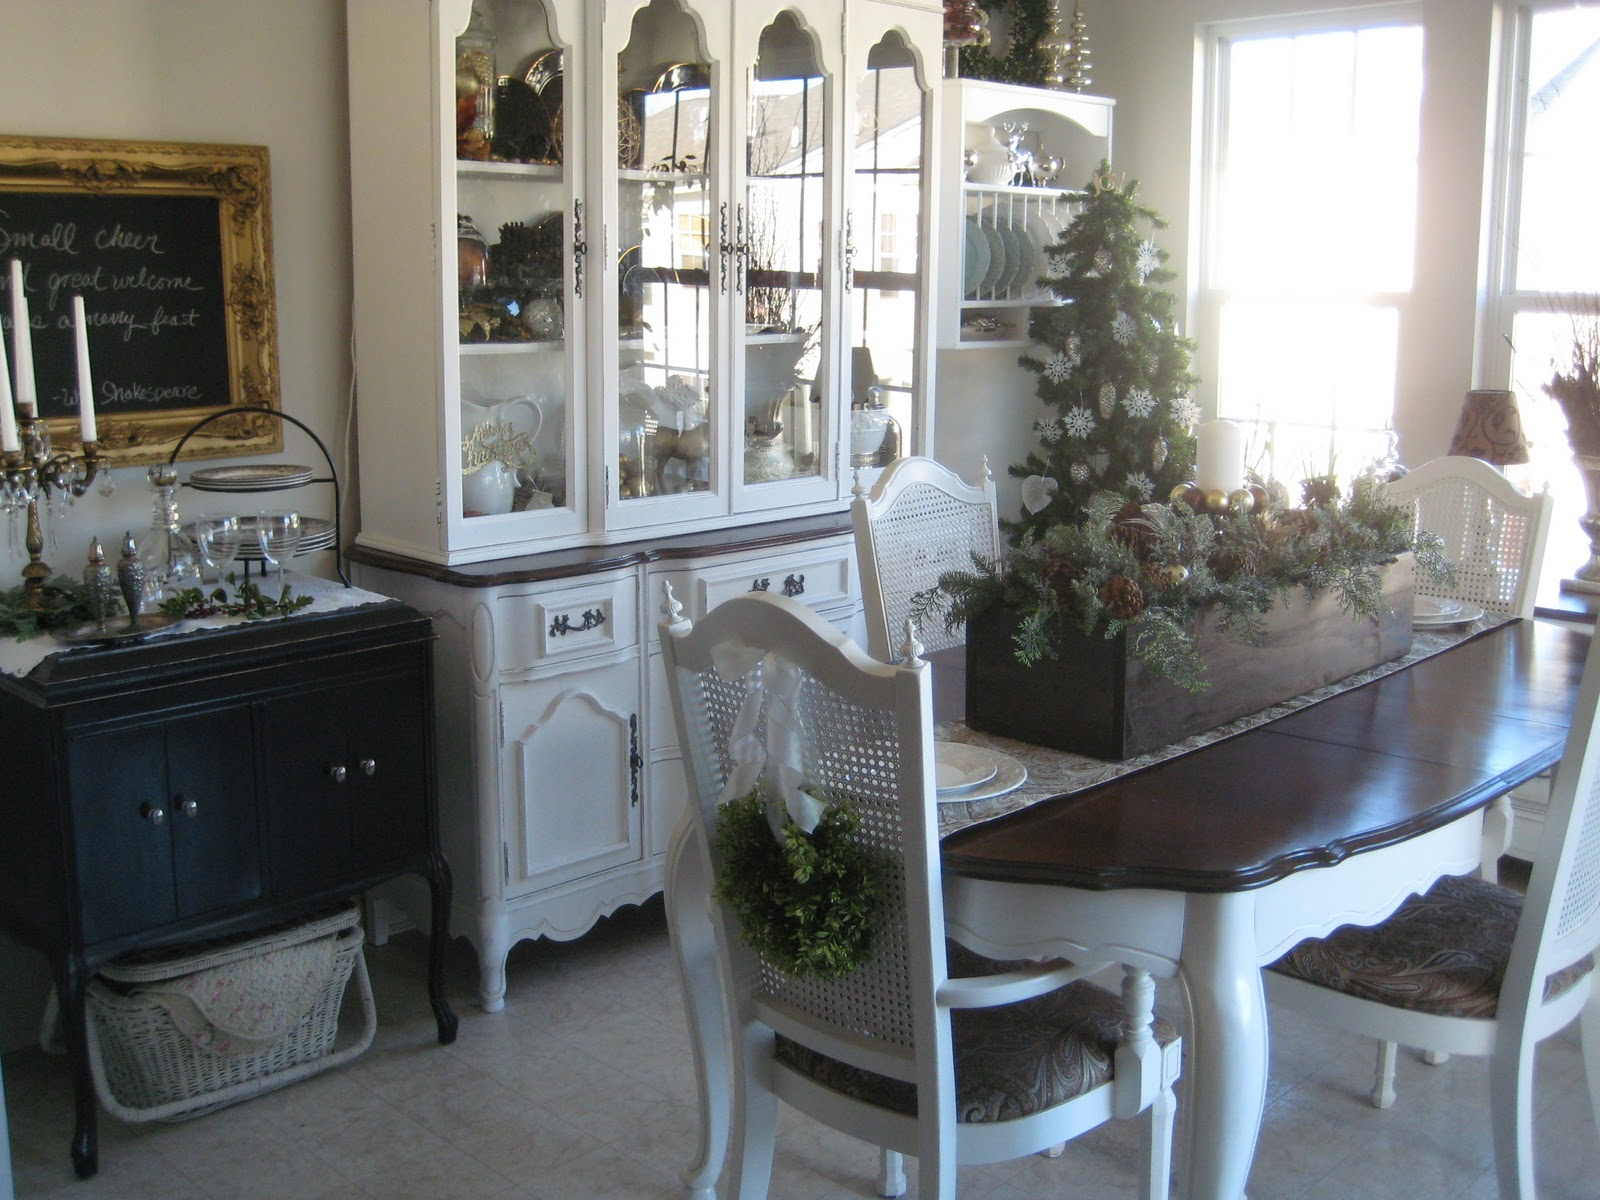 A Comfy Little Place of My Own: Chair Wreaths and the ...